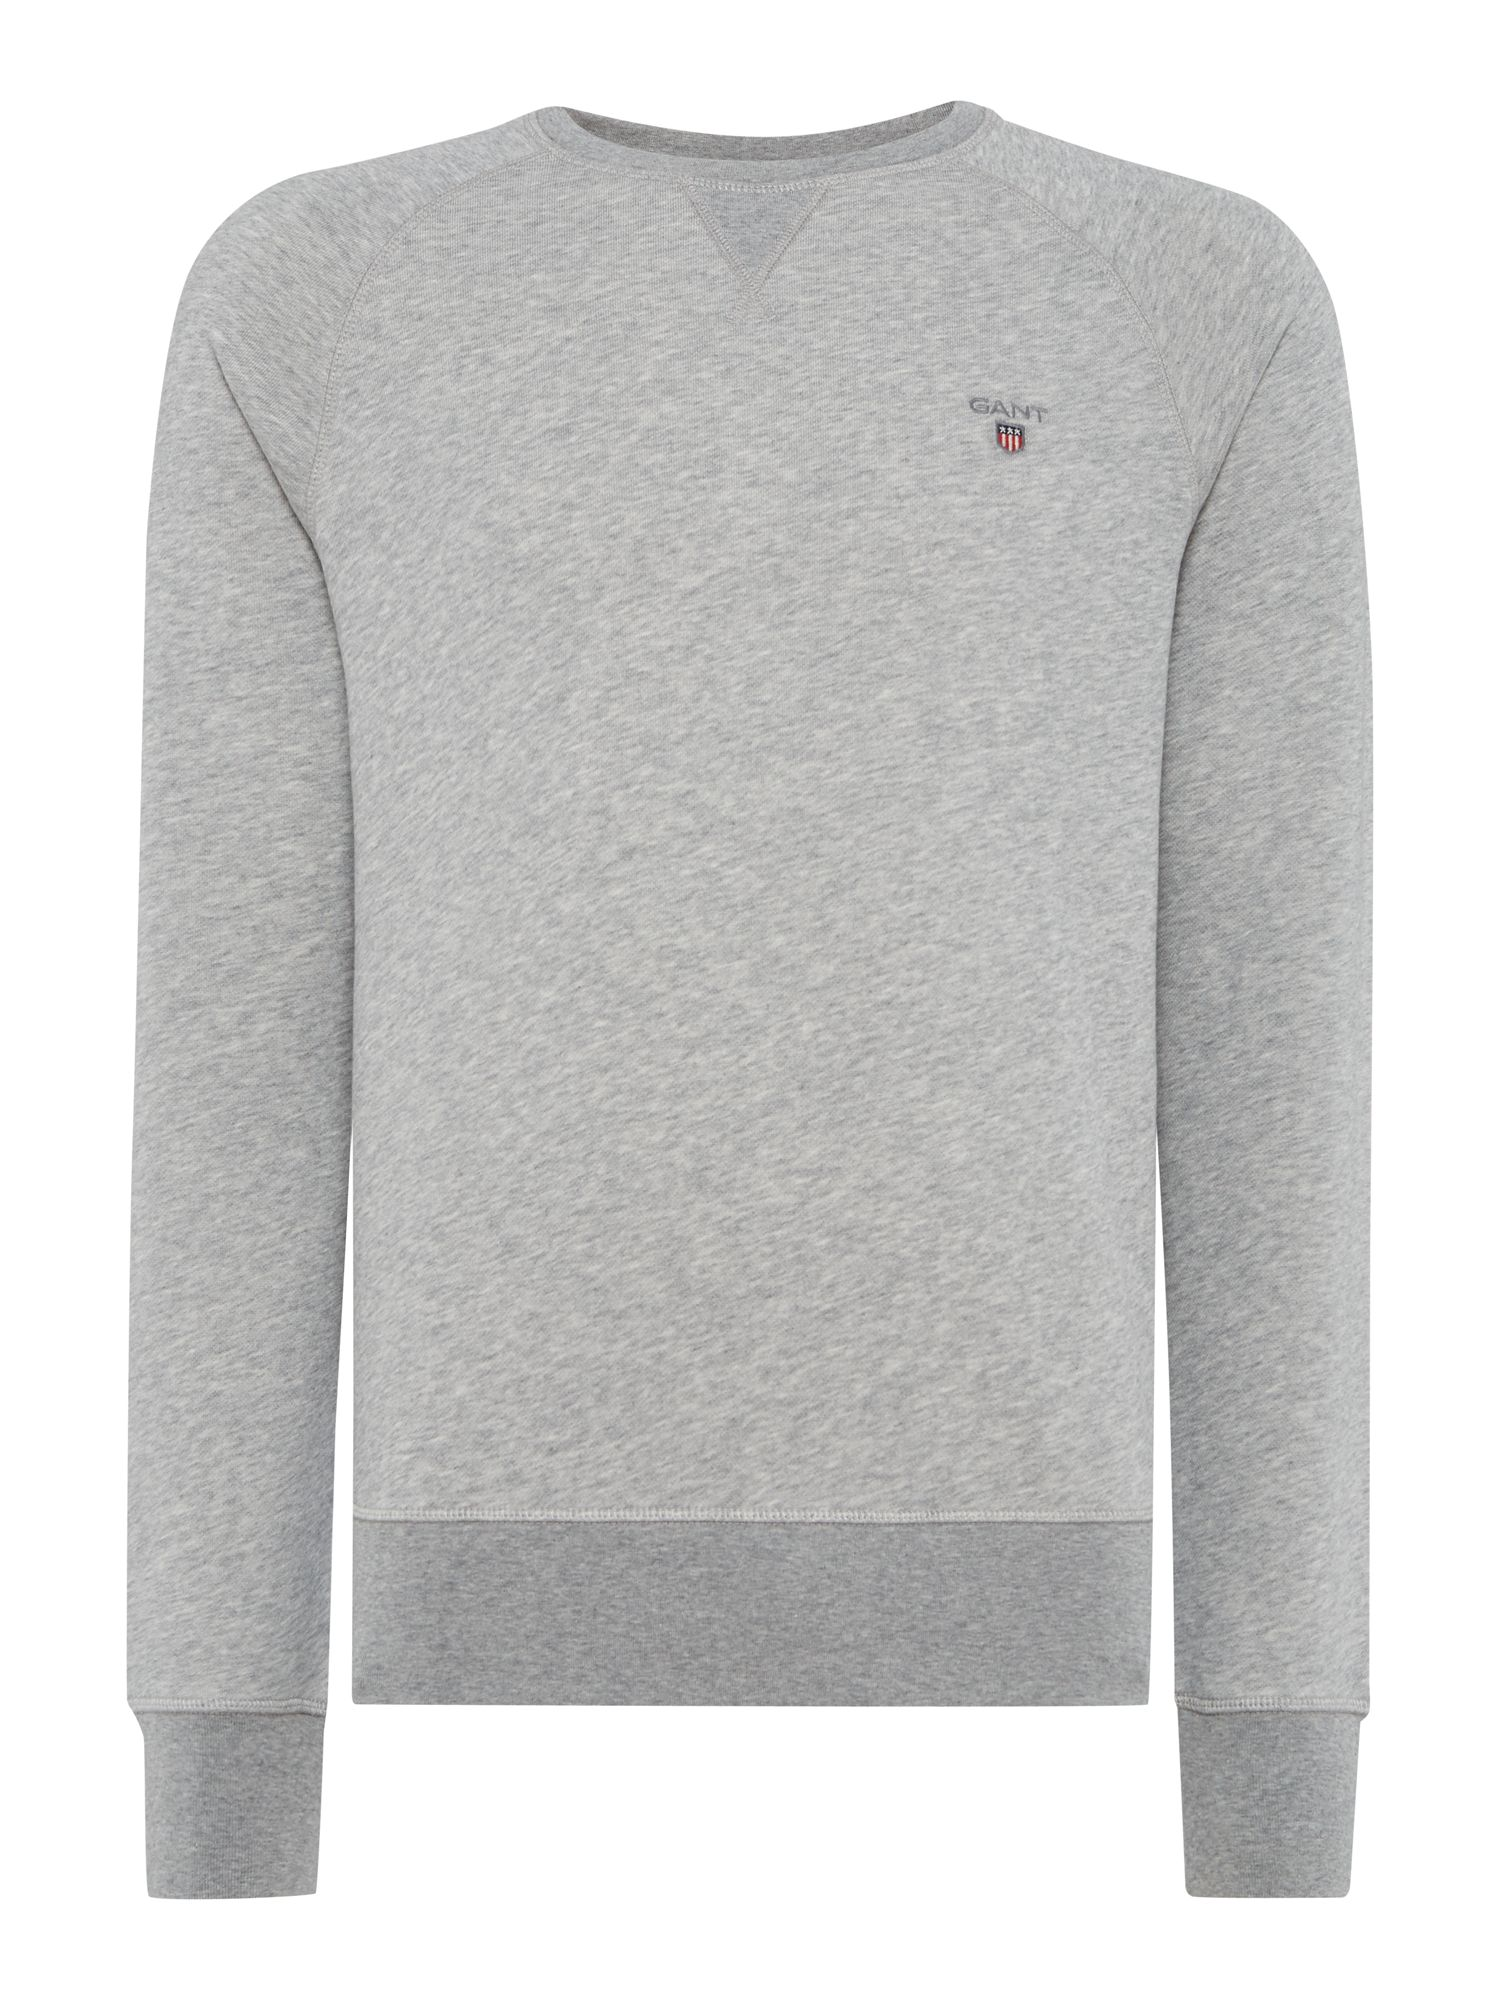 Men's Gant Original Crew Neck Sweat, Grey Marl